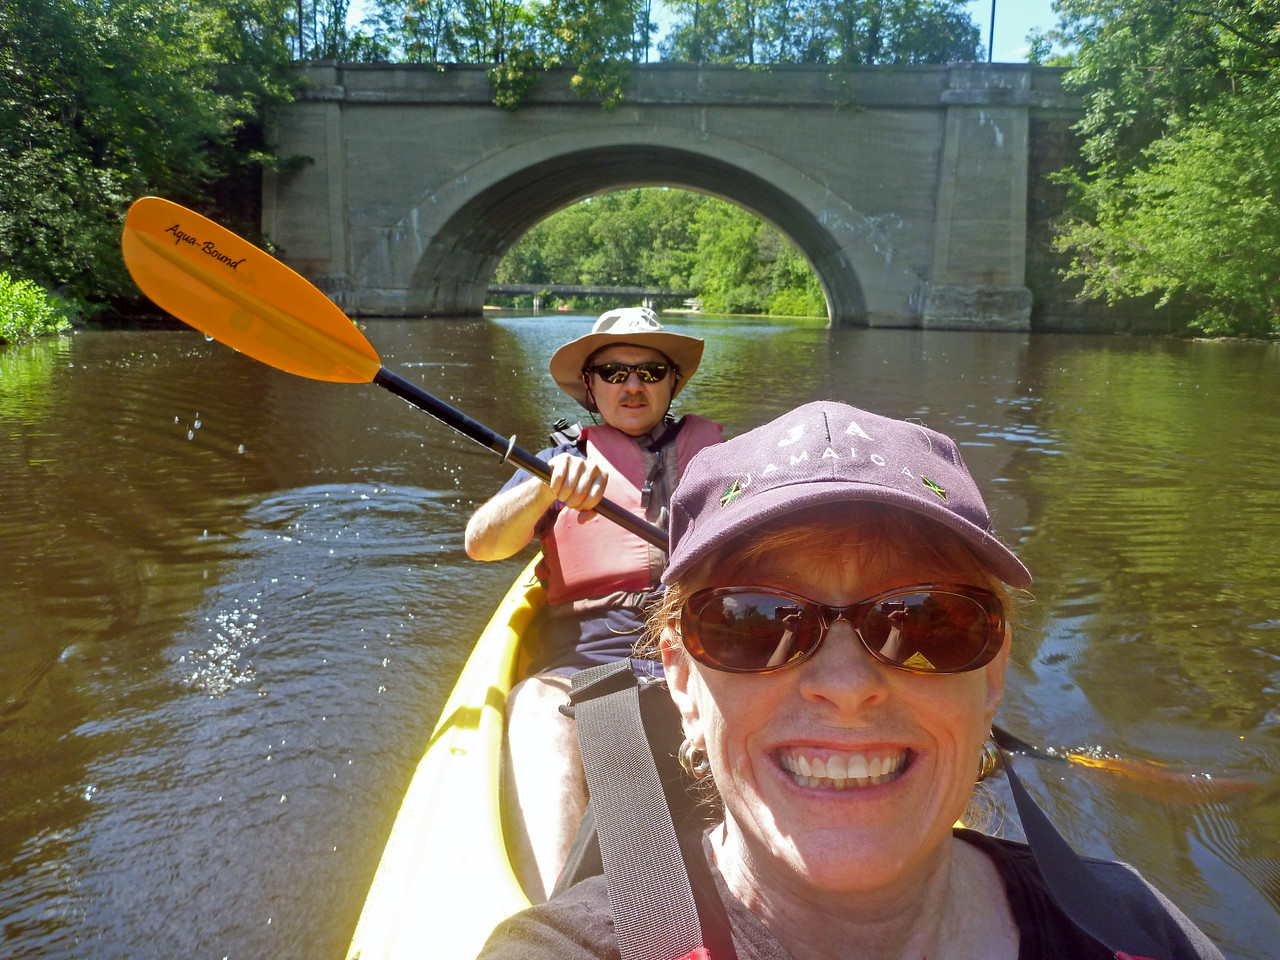 kayaking on the Charles July 11, 2011